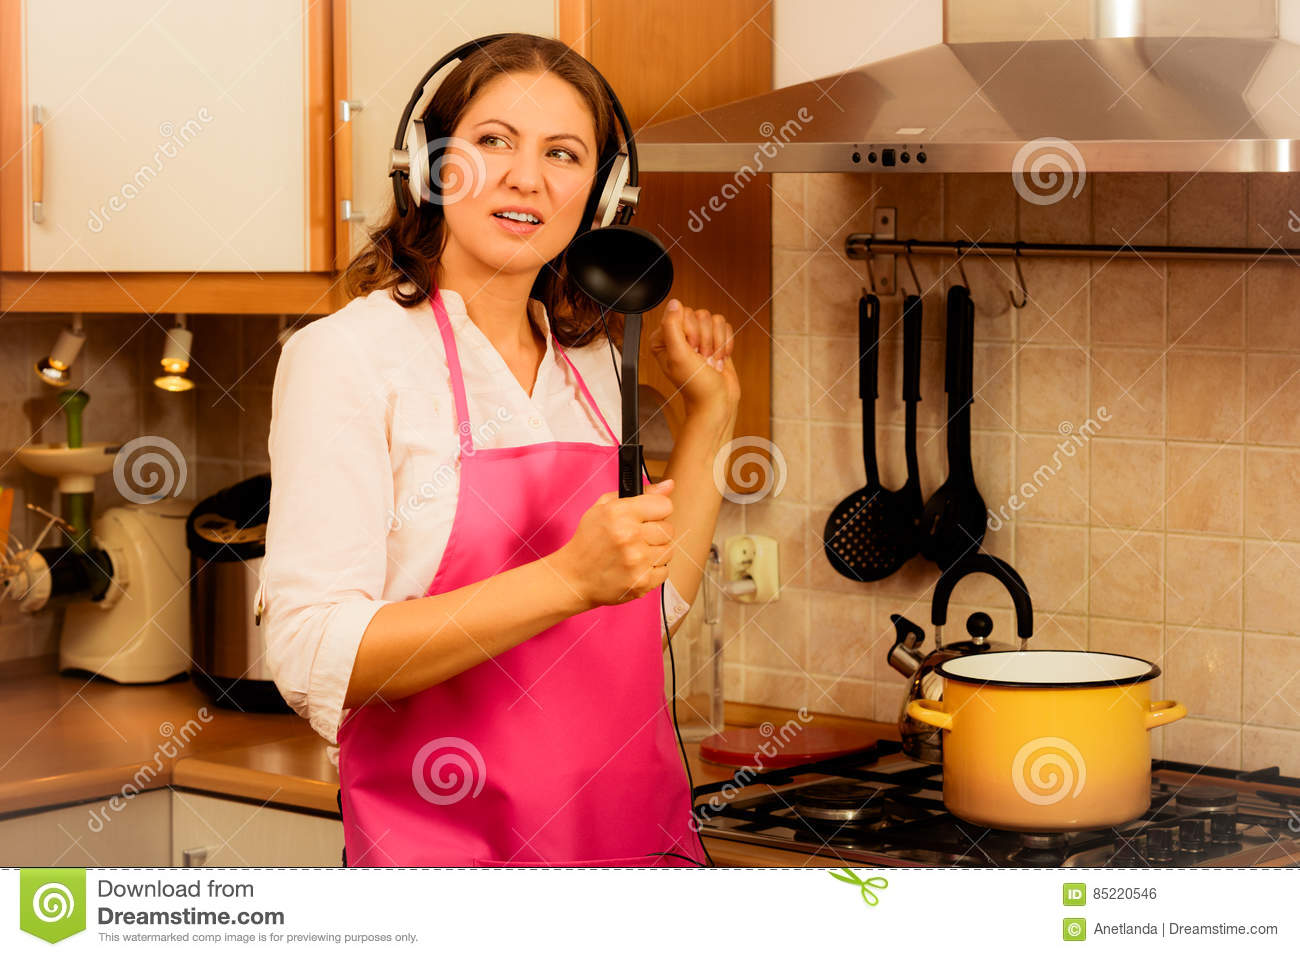 Modern beauty woman housewife cook chef wearing pink apron listening music on earphones singing and dancing in kitchen